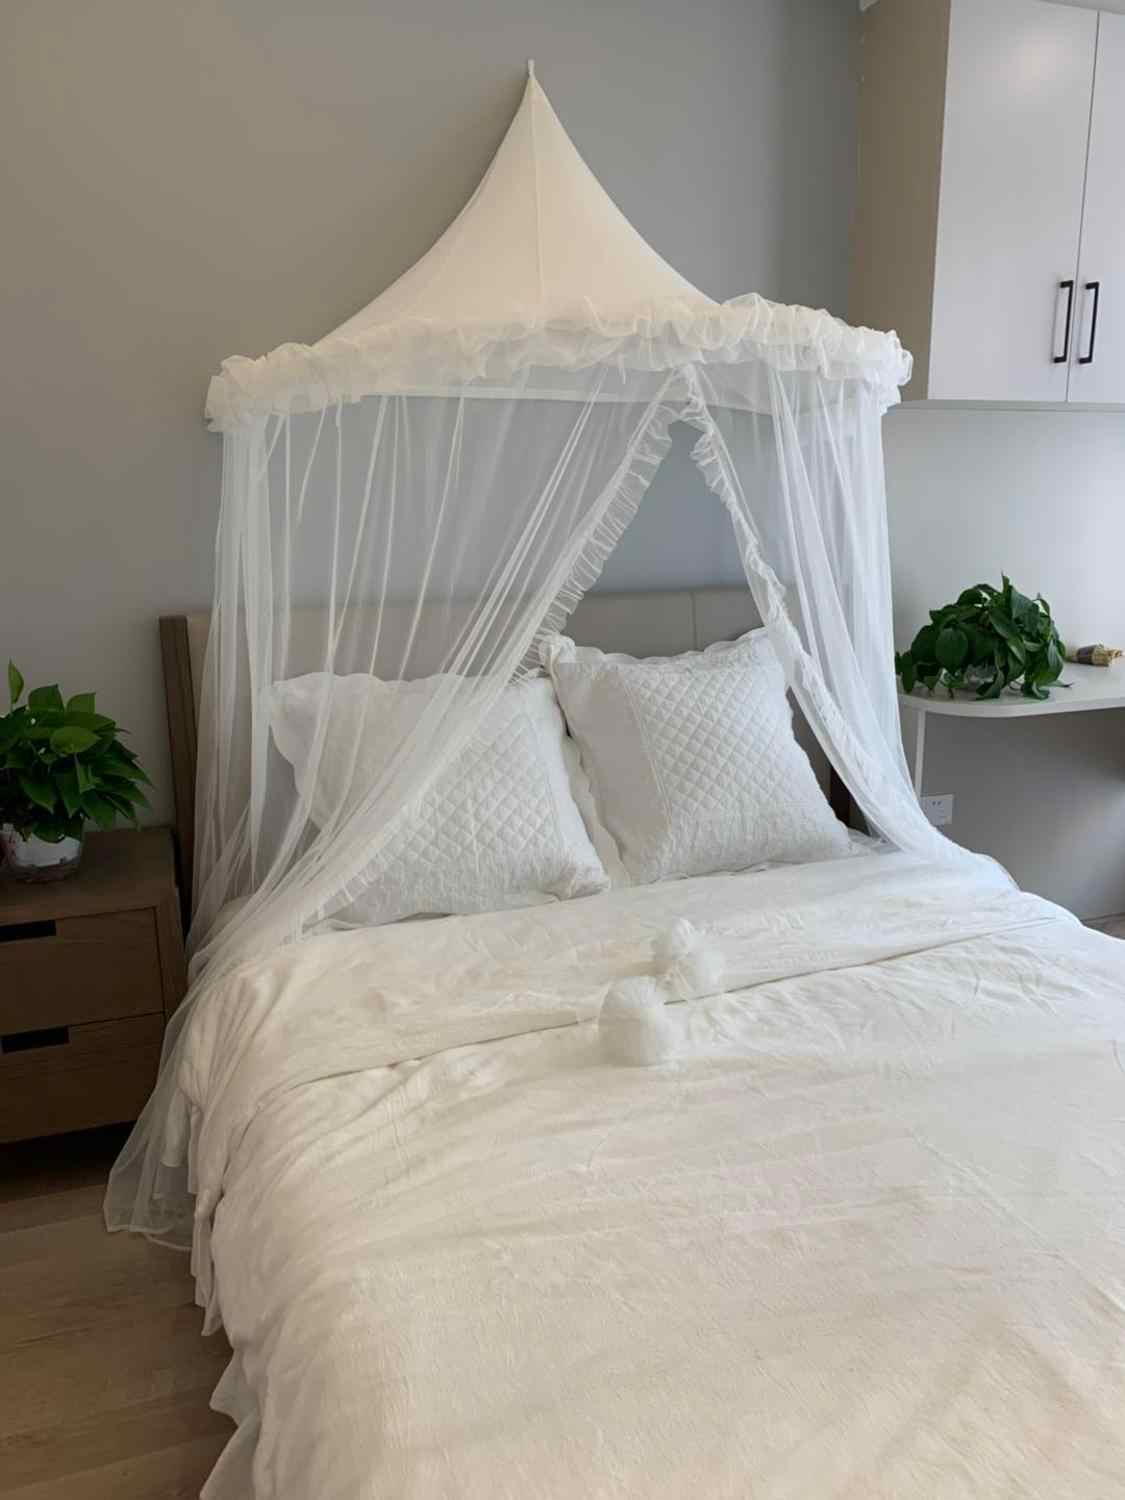 baby mosquito net crib netting white canopy bed curtains toddler kids play tent house baby girls bedroom decor bed tent children